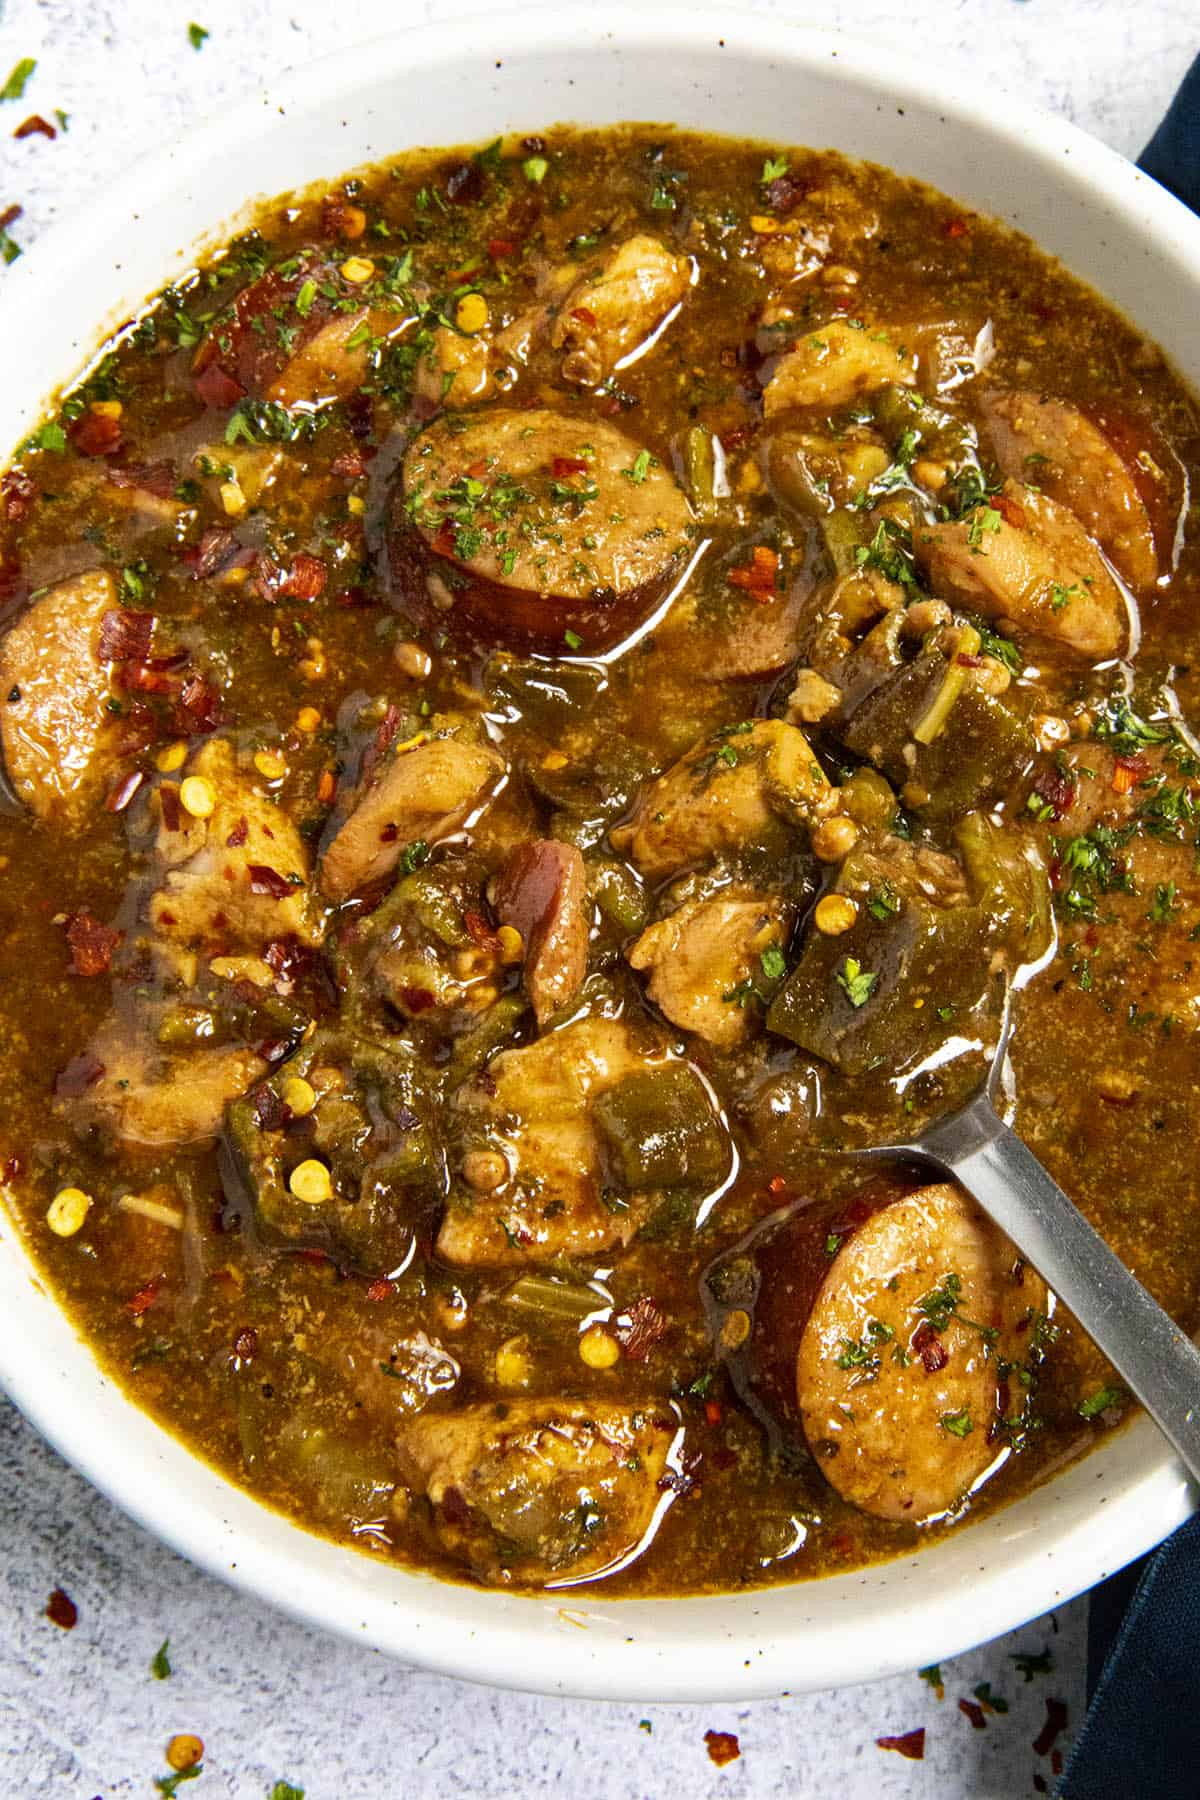 Cajun Chicken and Sausage Gumbo in a bowl with a spoon